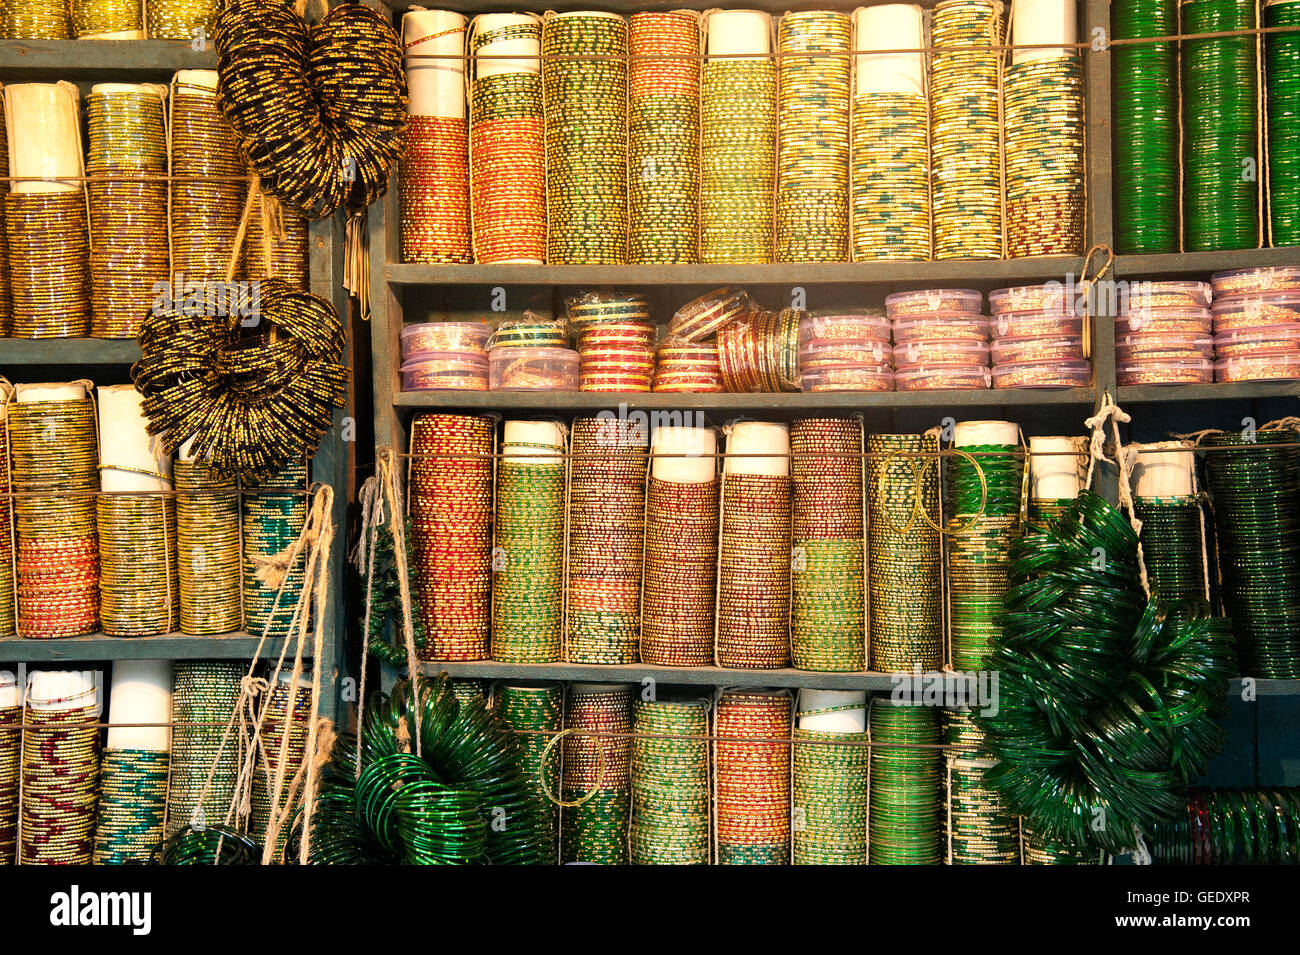 The image of Bangles shop at streets of Mumbai, India - Stock Image